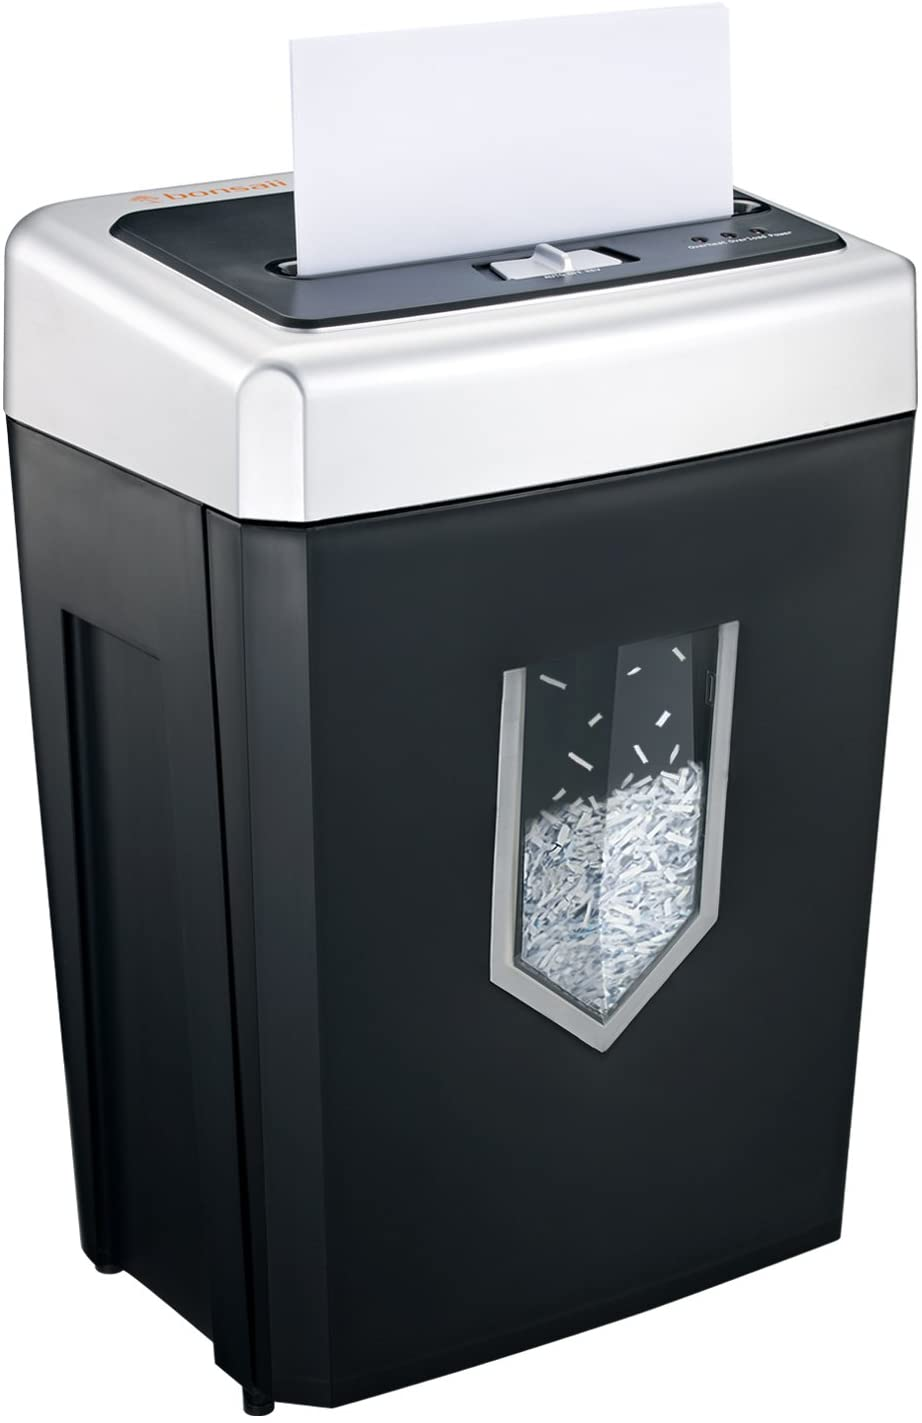 Bonsaii EverShred 14-Sheet Cross-Cut Paper Shredder uk reviews